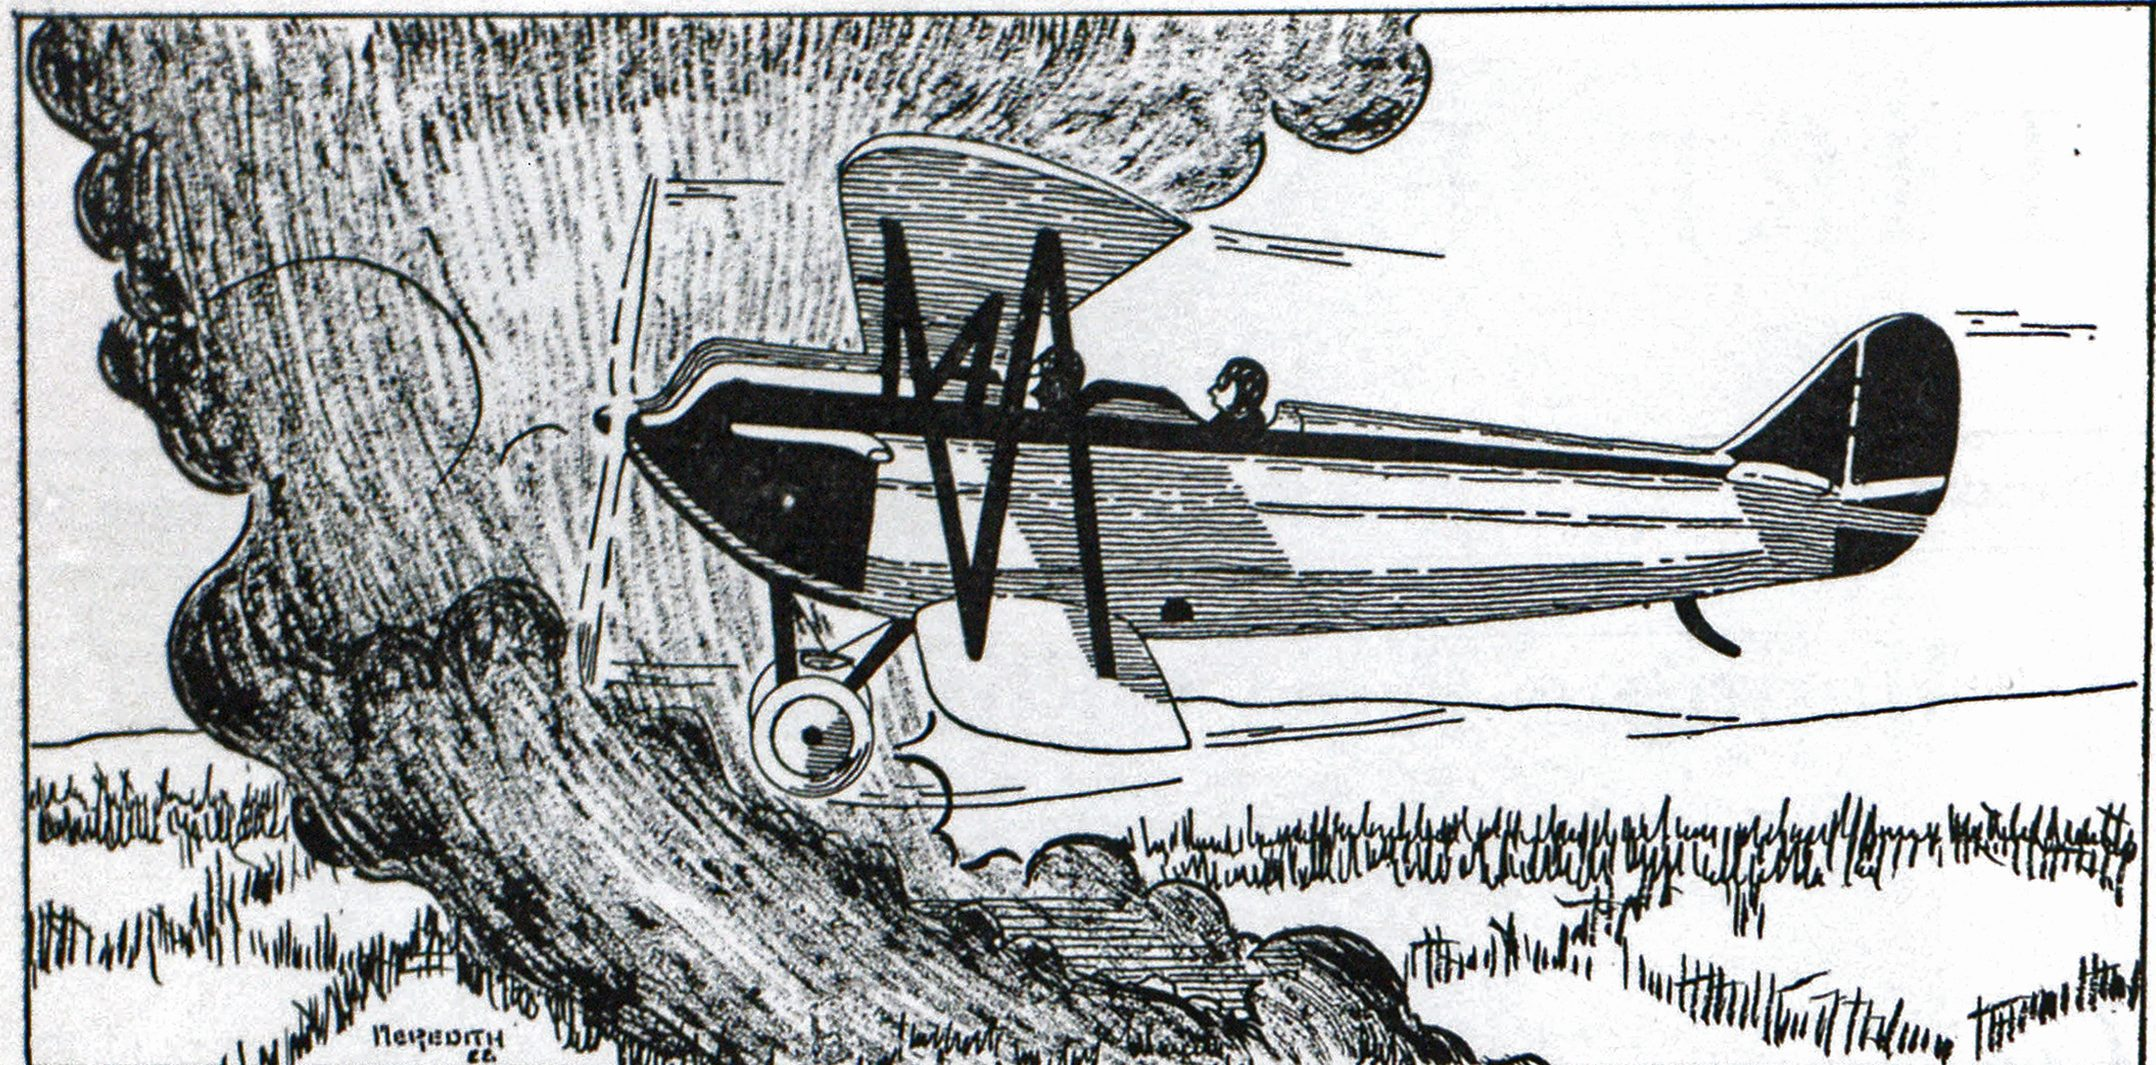 Sketch Showing Airplane Making Survey of Forest Fire, with Assistant Fire Warden and Pilot on Board